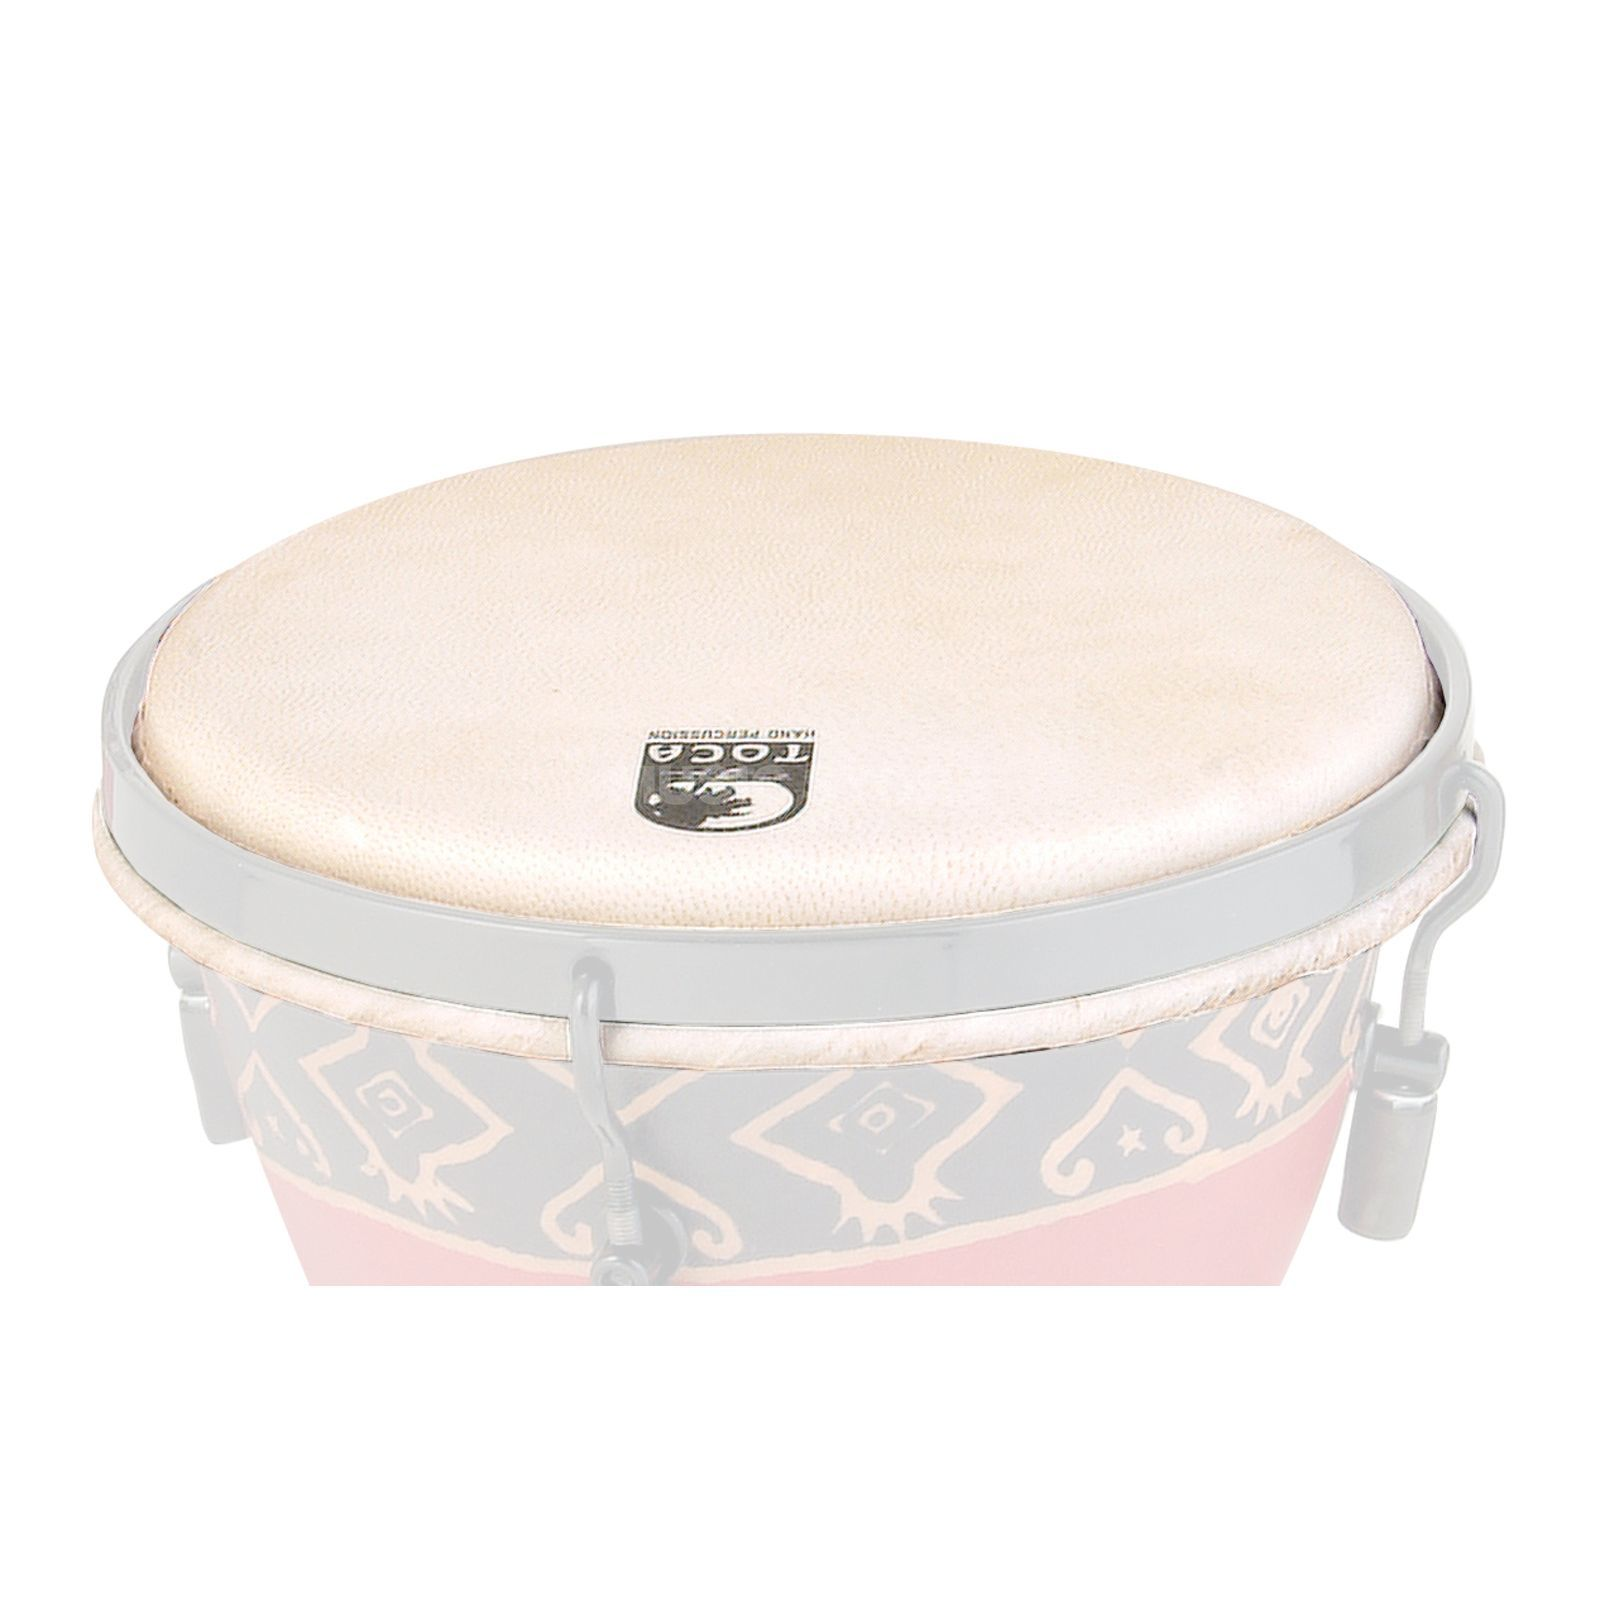 "Toca Percussion Djembe Head for SFDJM-10RP, 10"" Product Image"